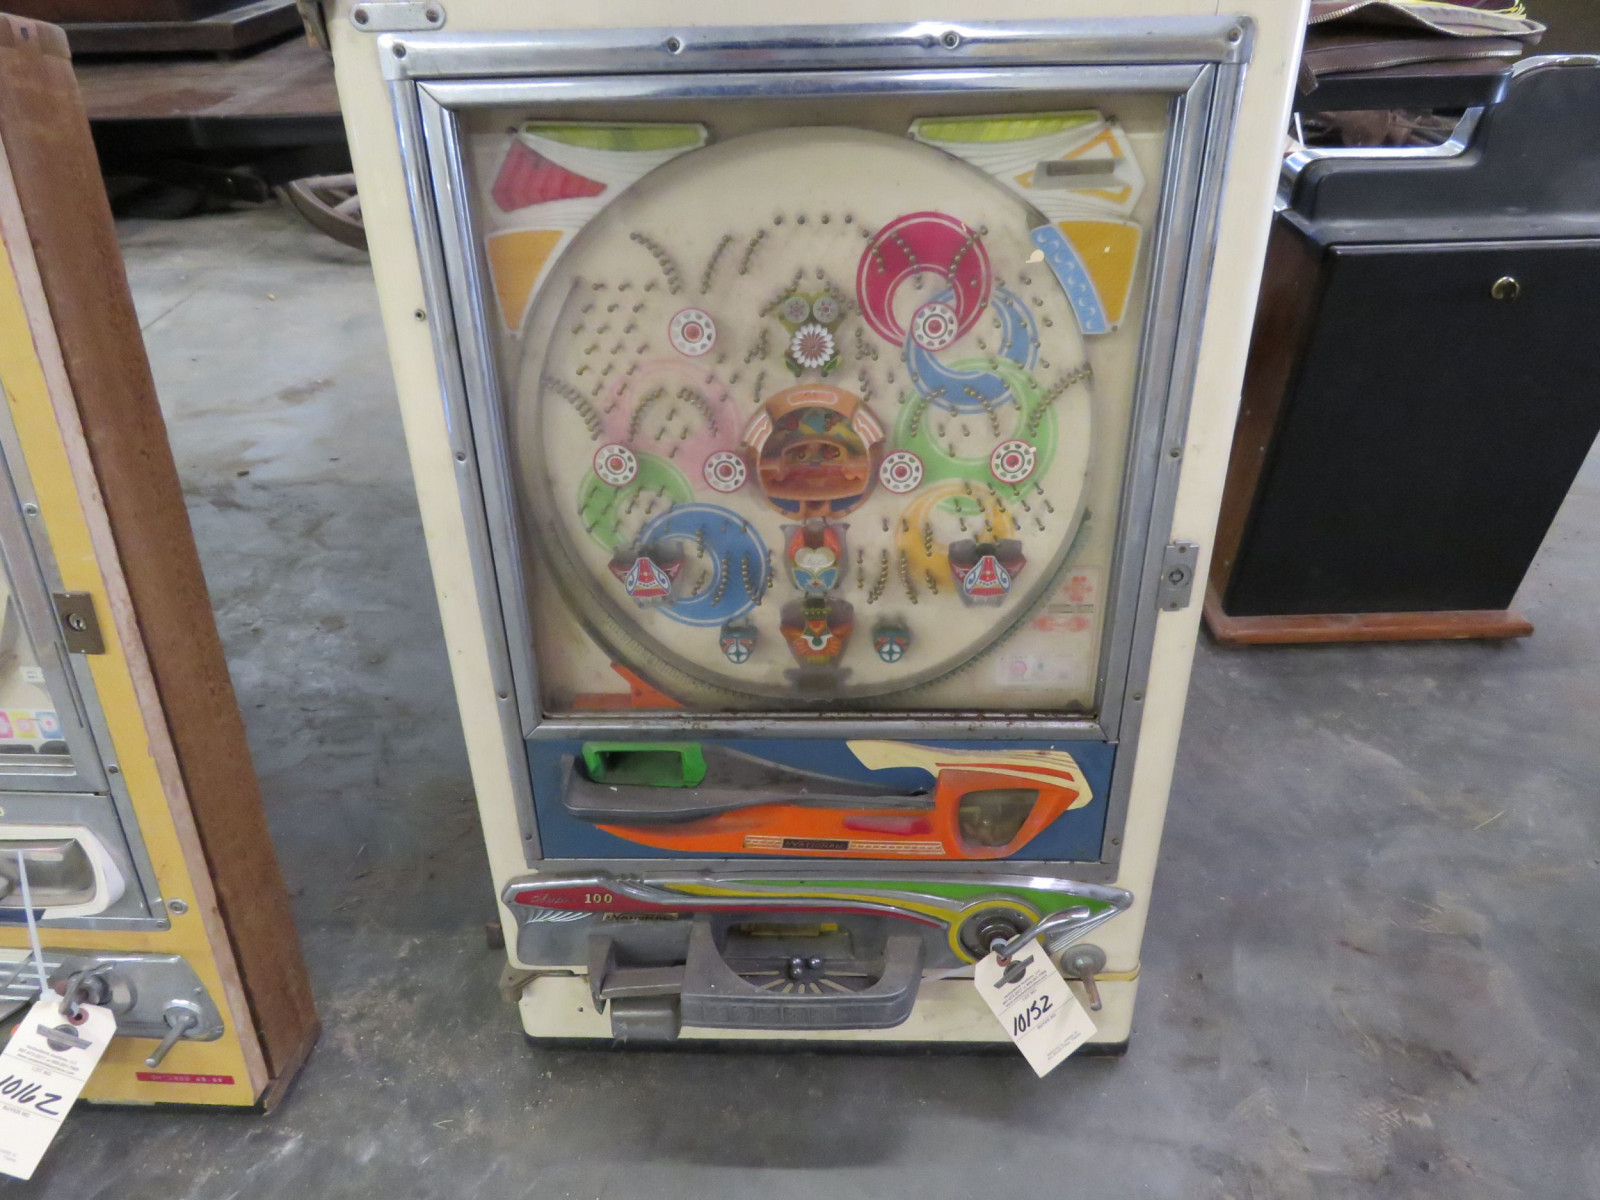 National Super 100 Vintage Pinball Machine - Image 1